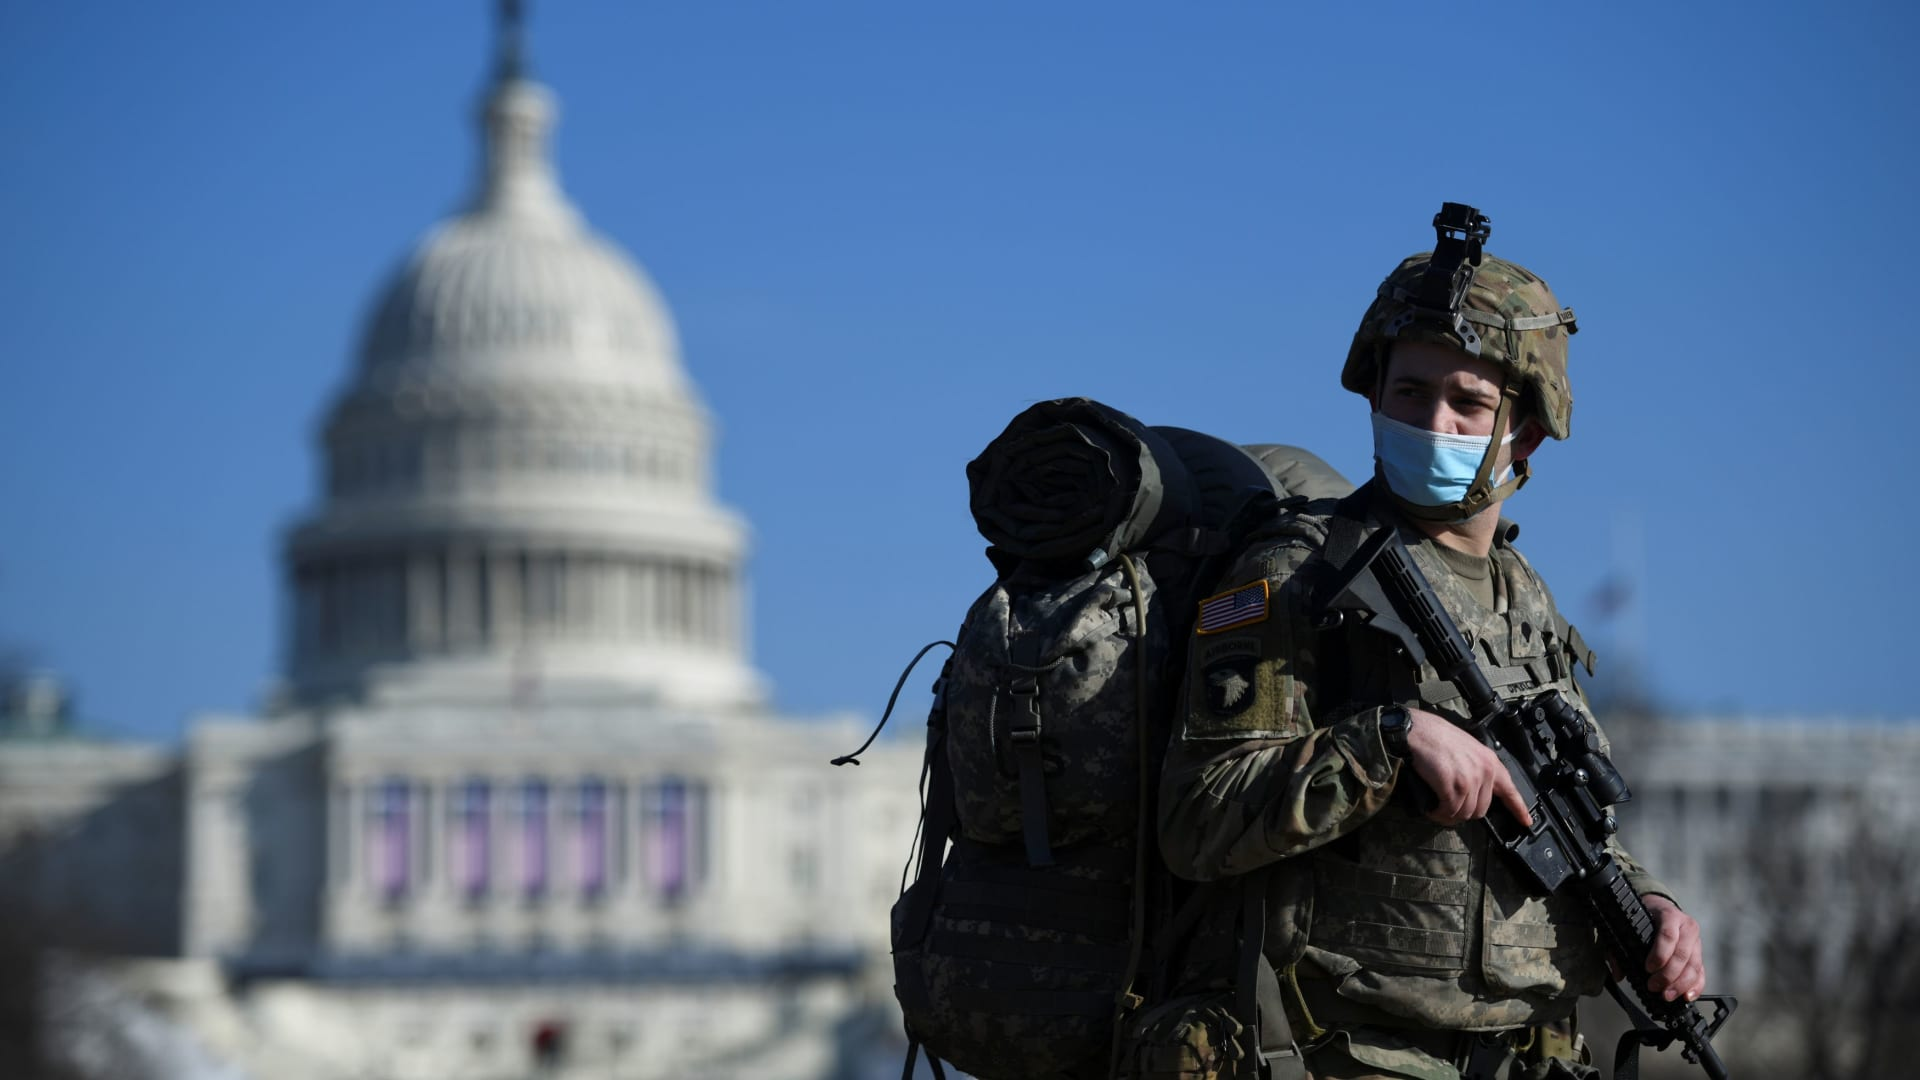 A member of the National Guard mounts guard near the U.S. Capitol building, as the House of Representatives debates impeaching U.S. President Donald Trump a week after his supporters stormed the Capitol building in Washington, U.S., January 13, 2021.